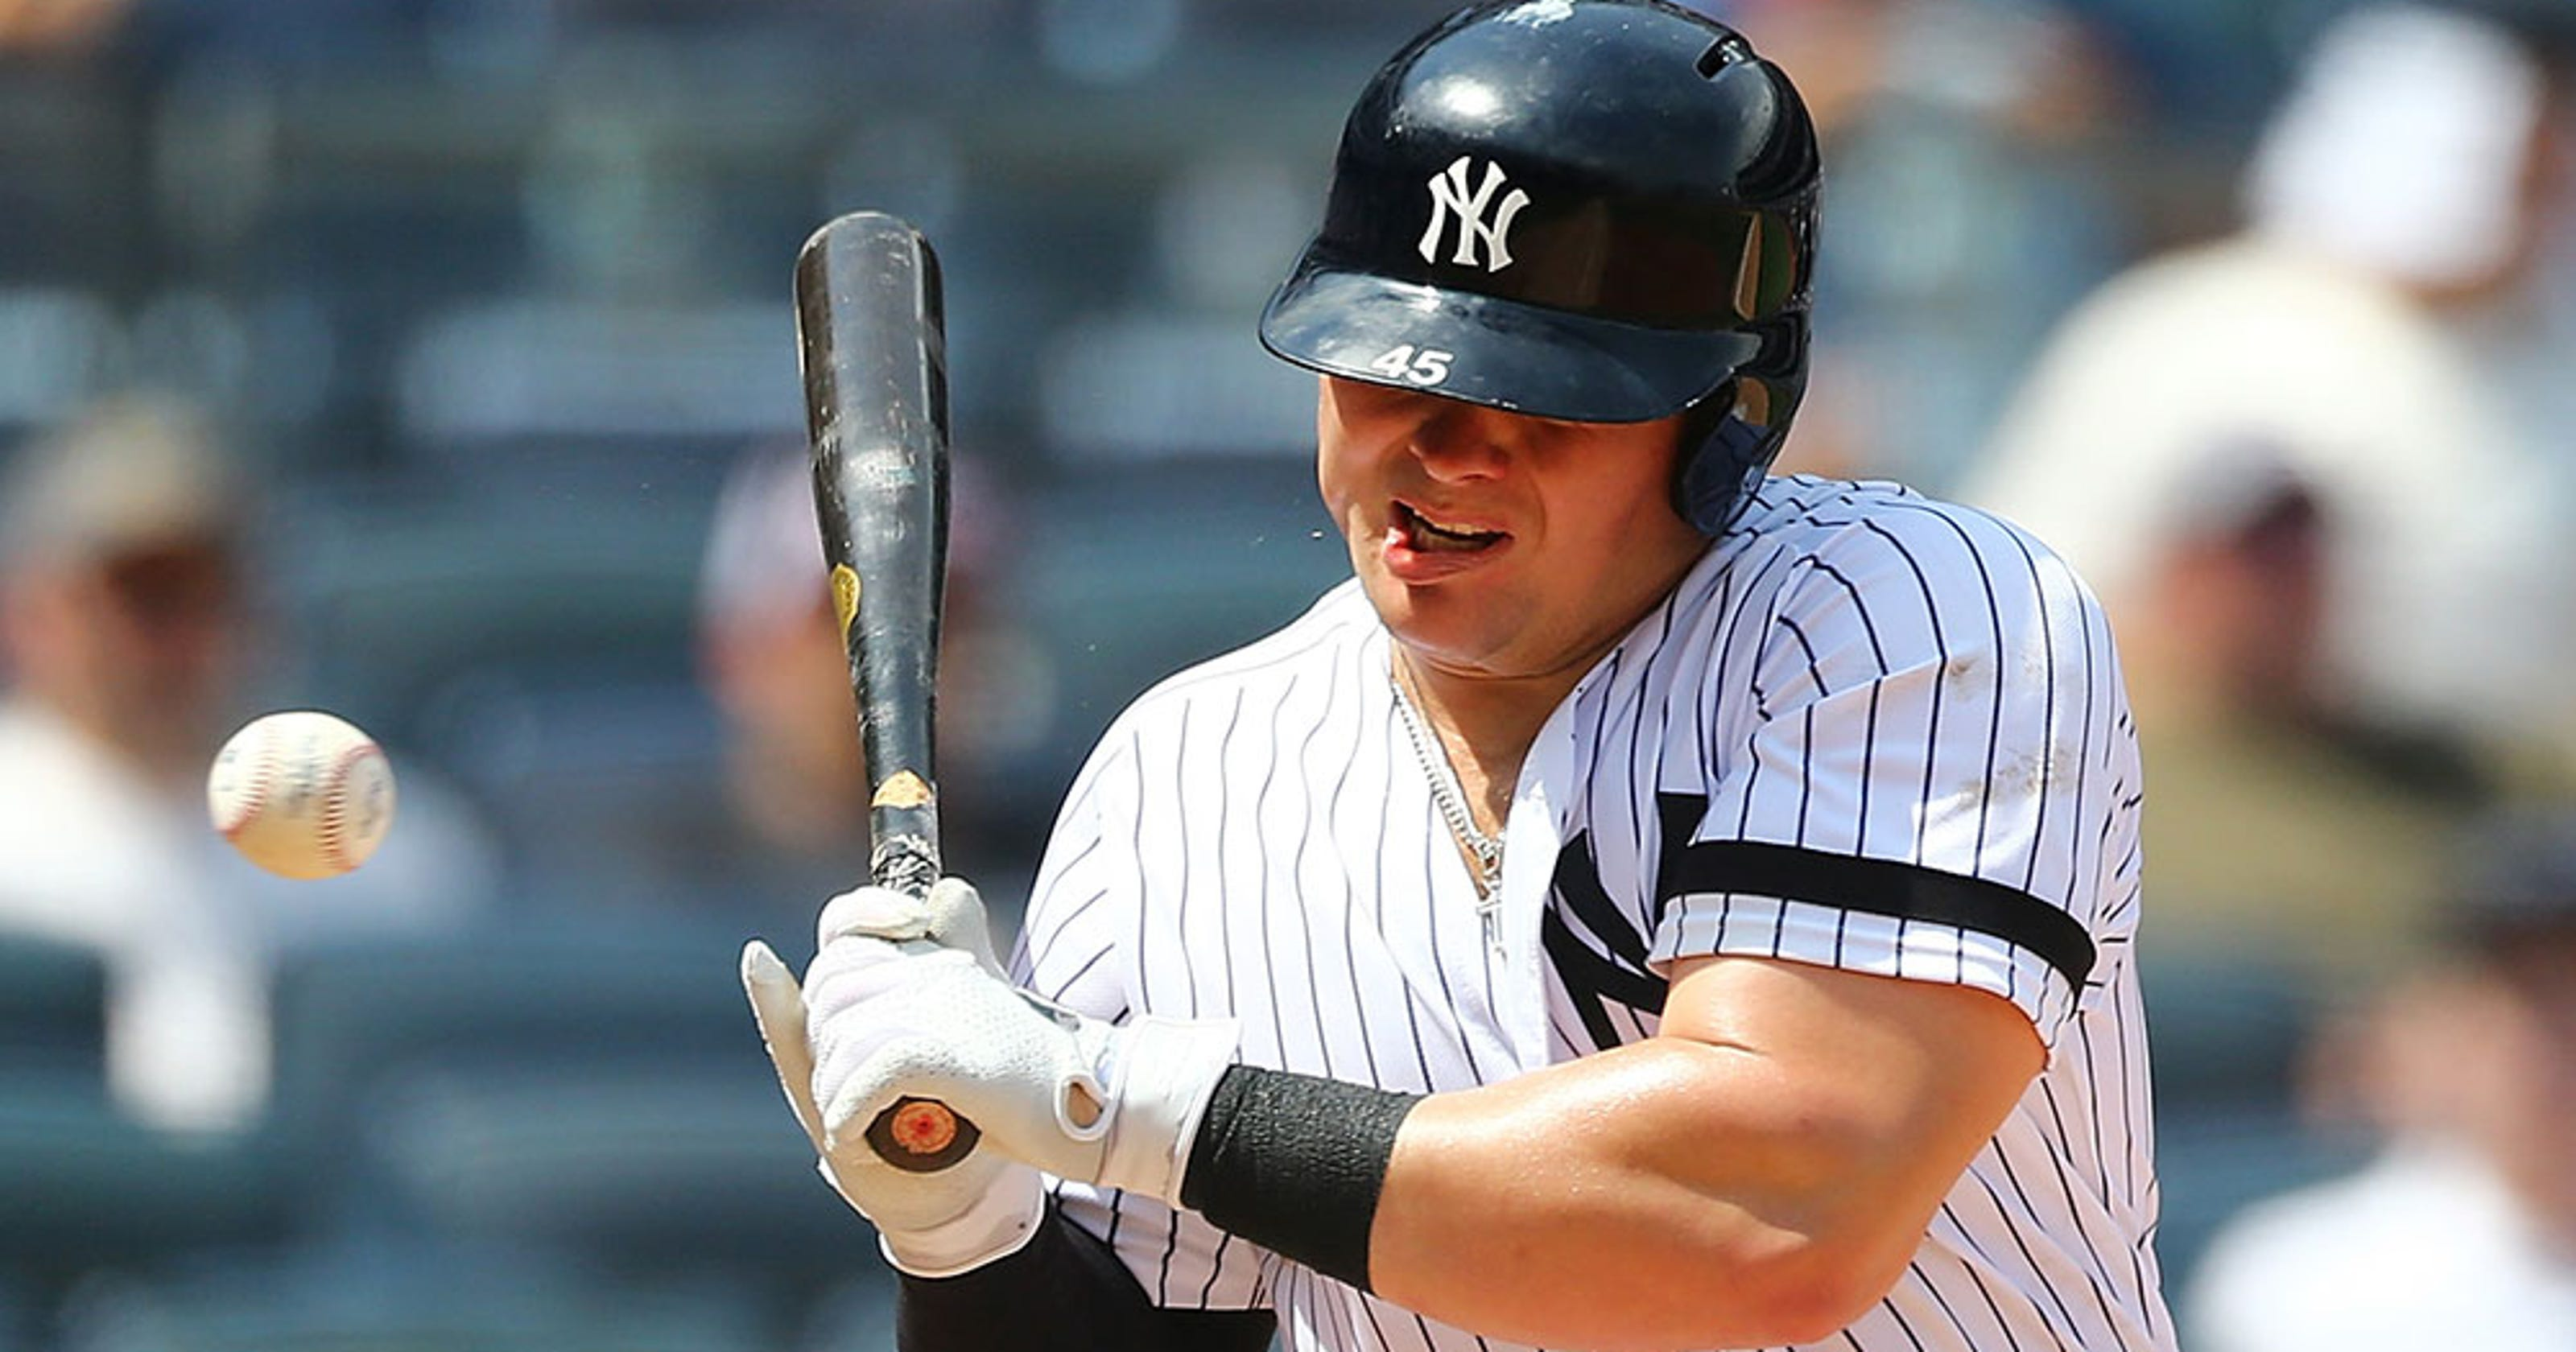 Yankees' Luke Voit takes fastball to the mouth, stays in the game to score run